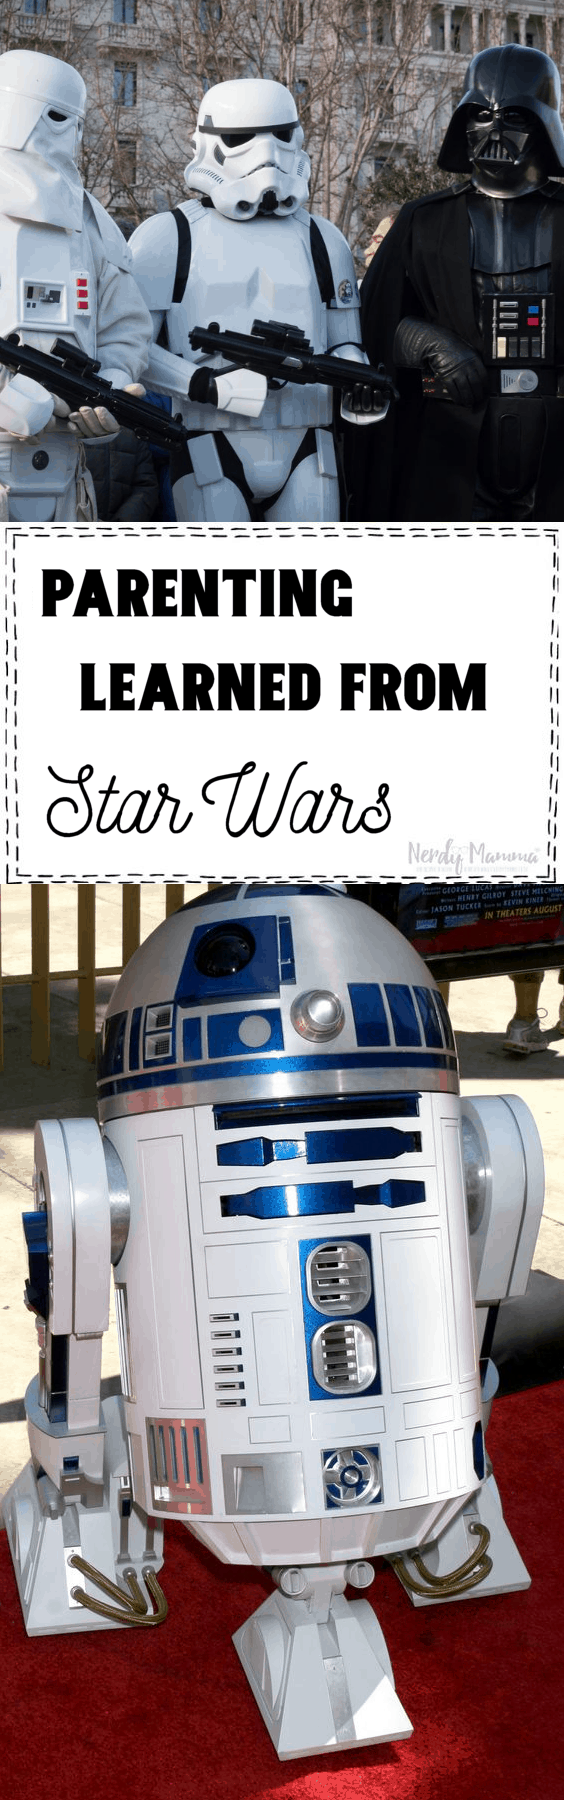 Star Wars is such a popular movie franchise that many fans look to the films for inspiration when dealing with life's issues. This is especially true for fans who are already parents or for those who plan on being parents in the future.